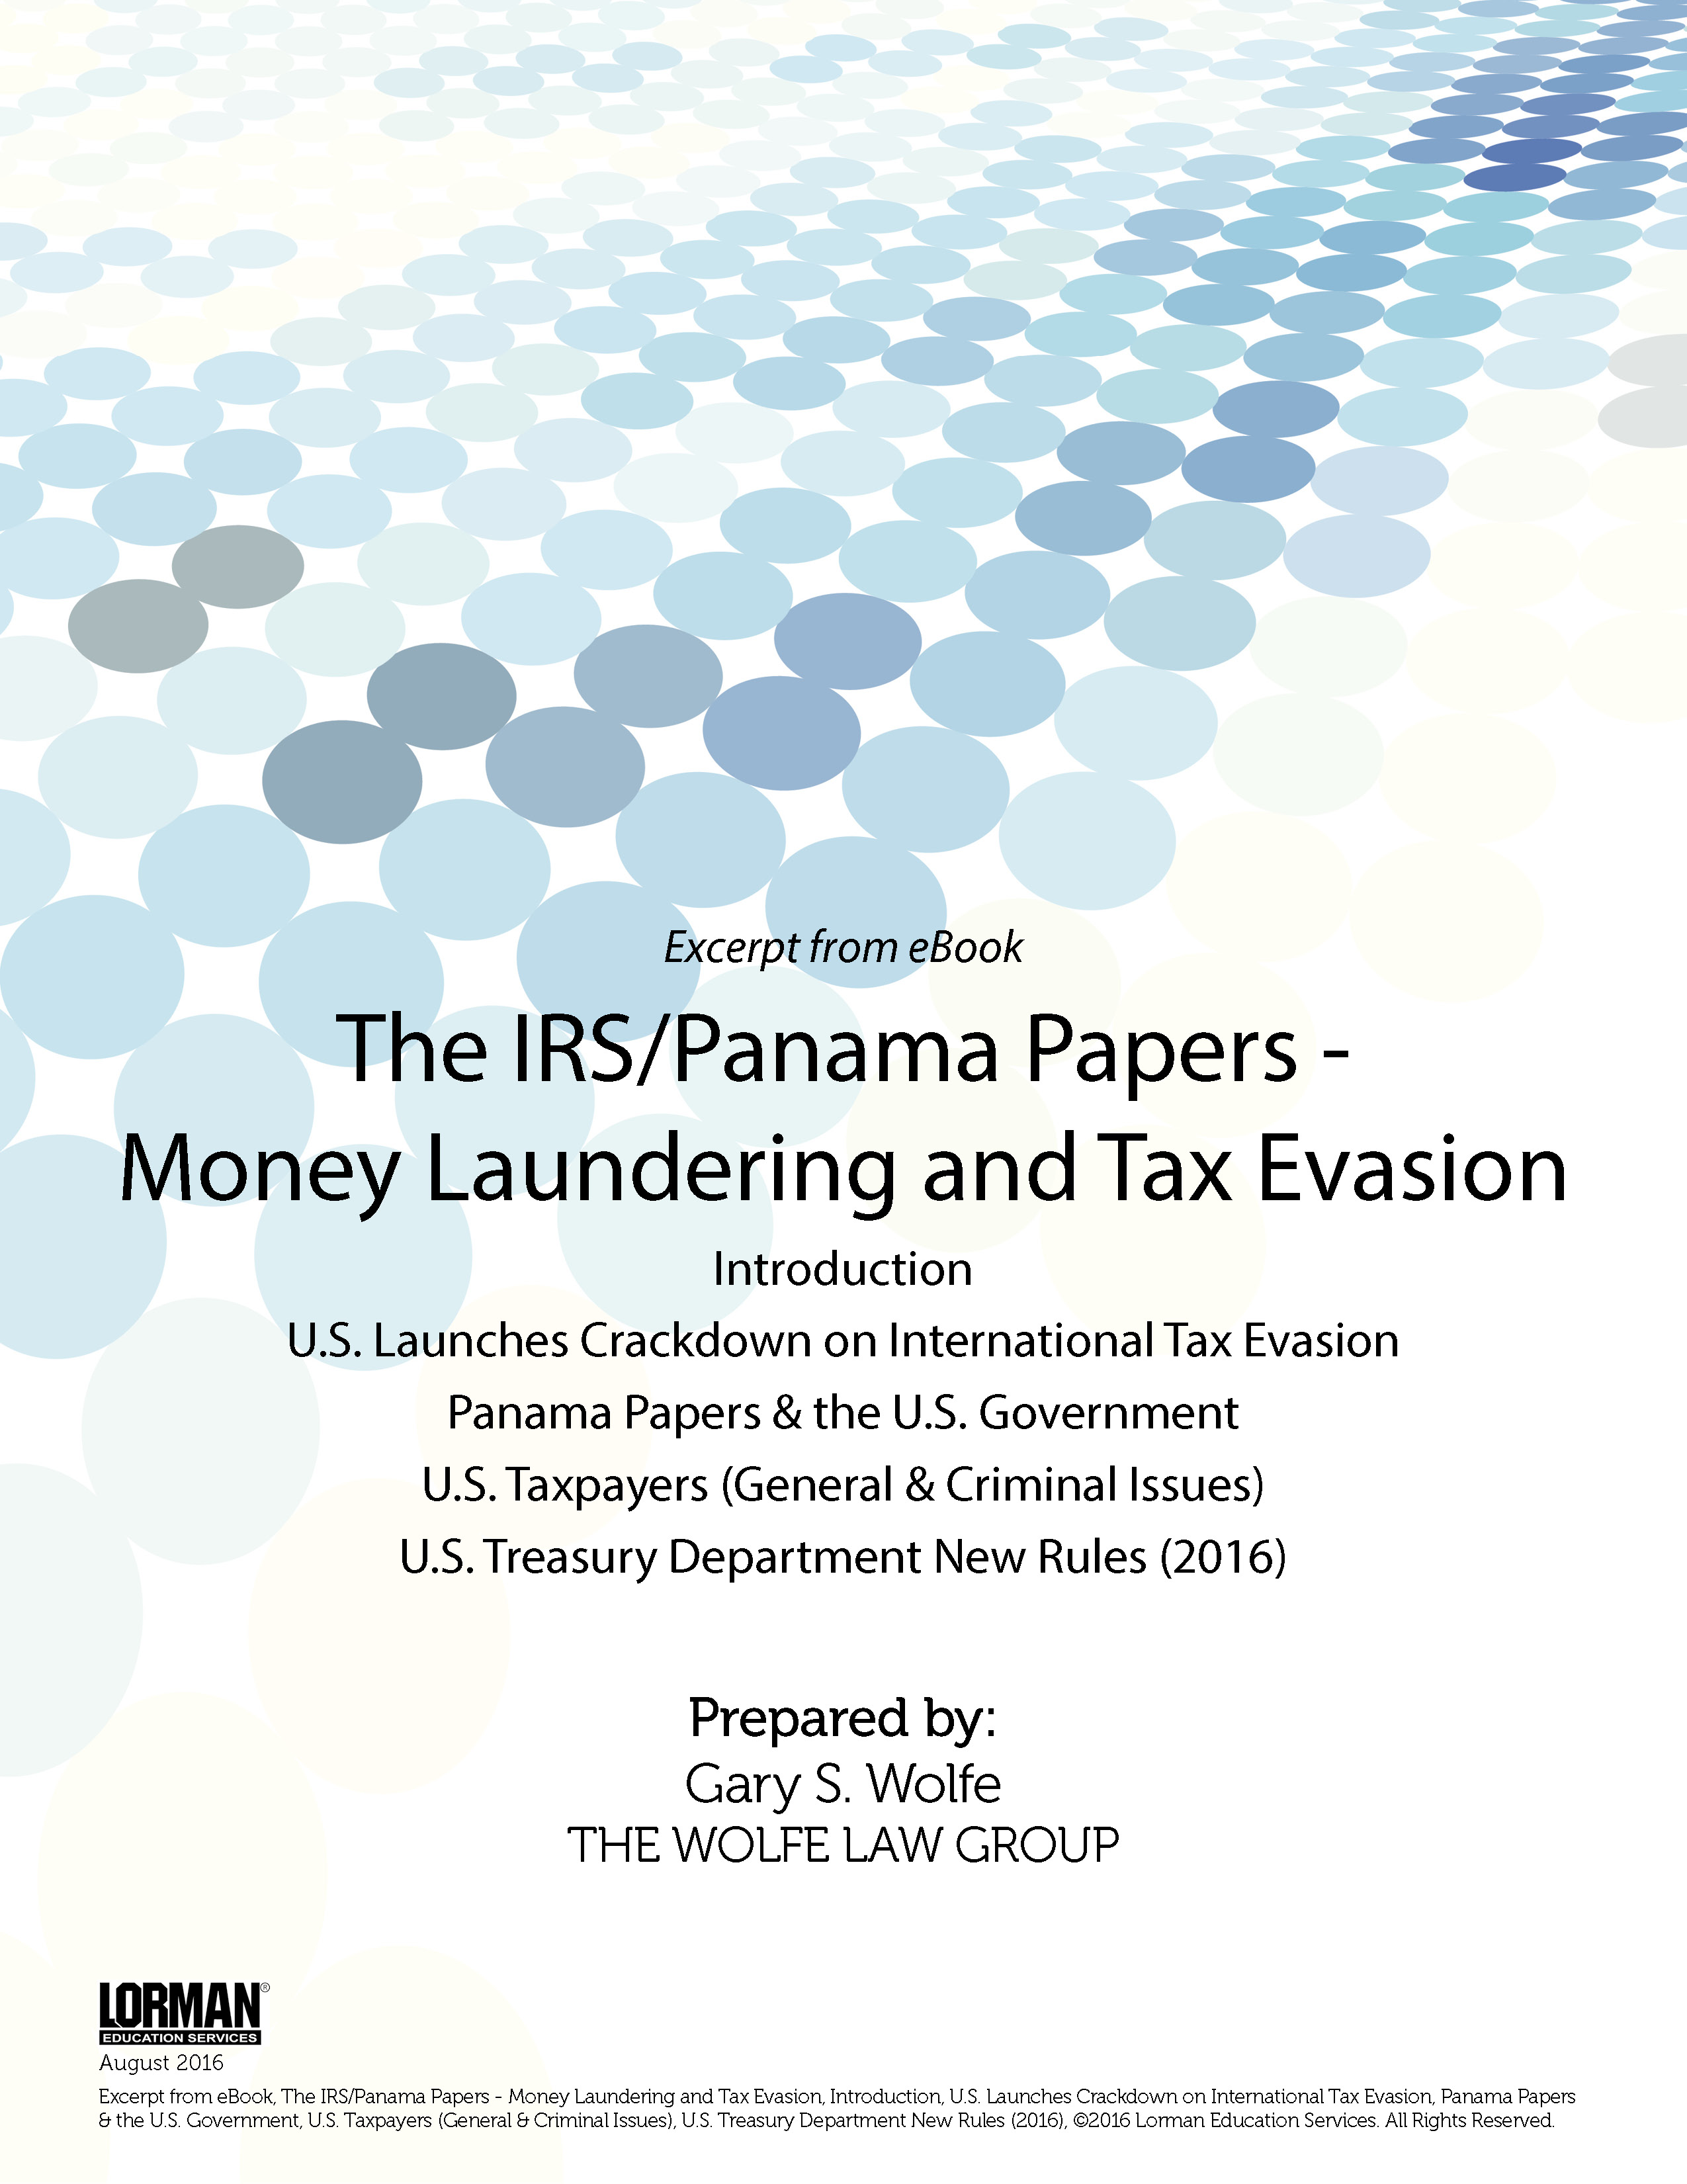 The IRS-Panama Papers - Money Laundering and International Tax Evasion; U.S. Treasury Department New Rules - 2016